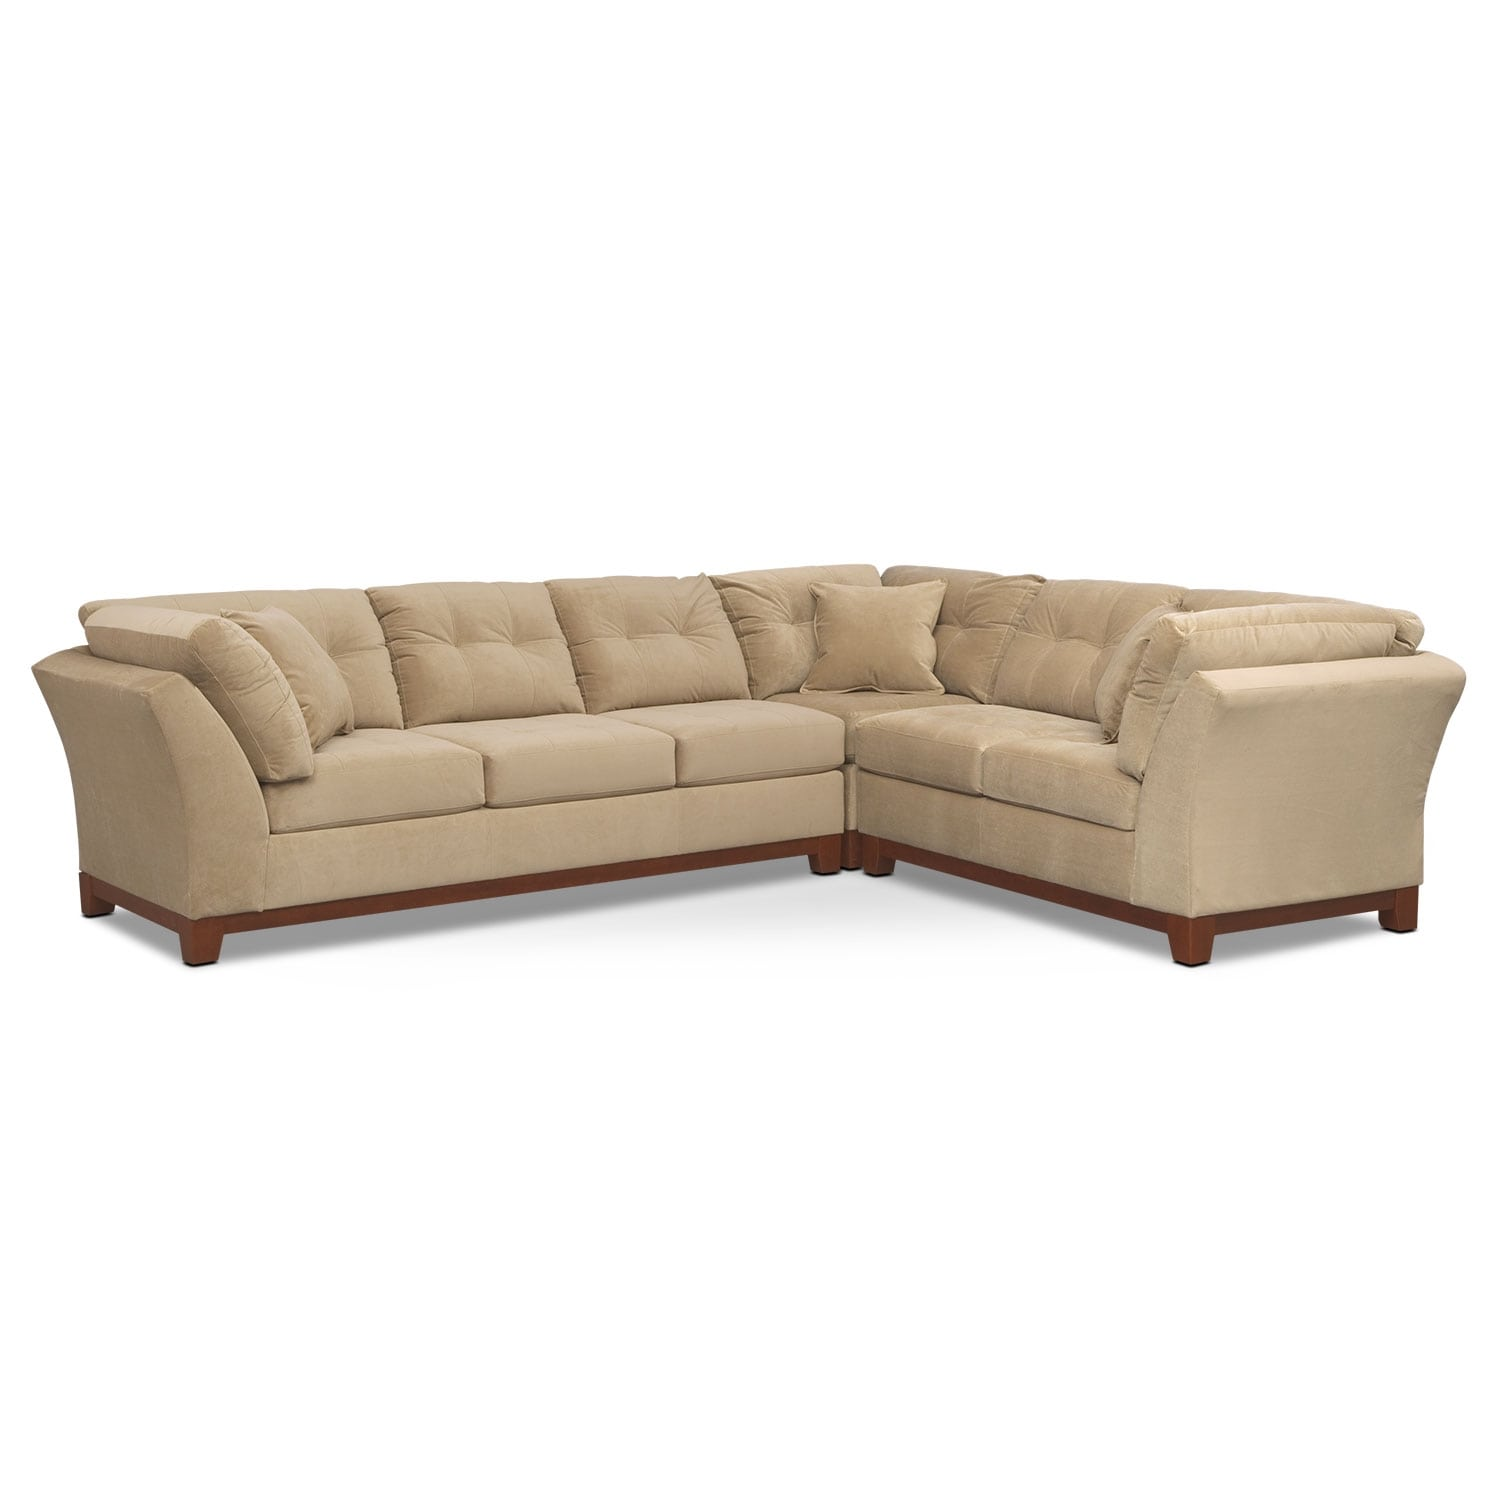 Solace 3-Piece Left-Facing Sofa Sectional - Cocoa